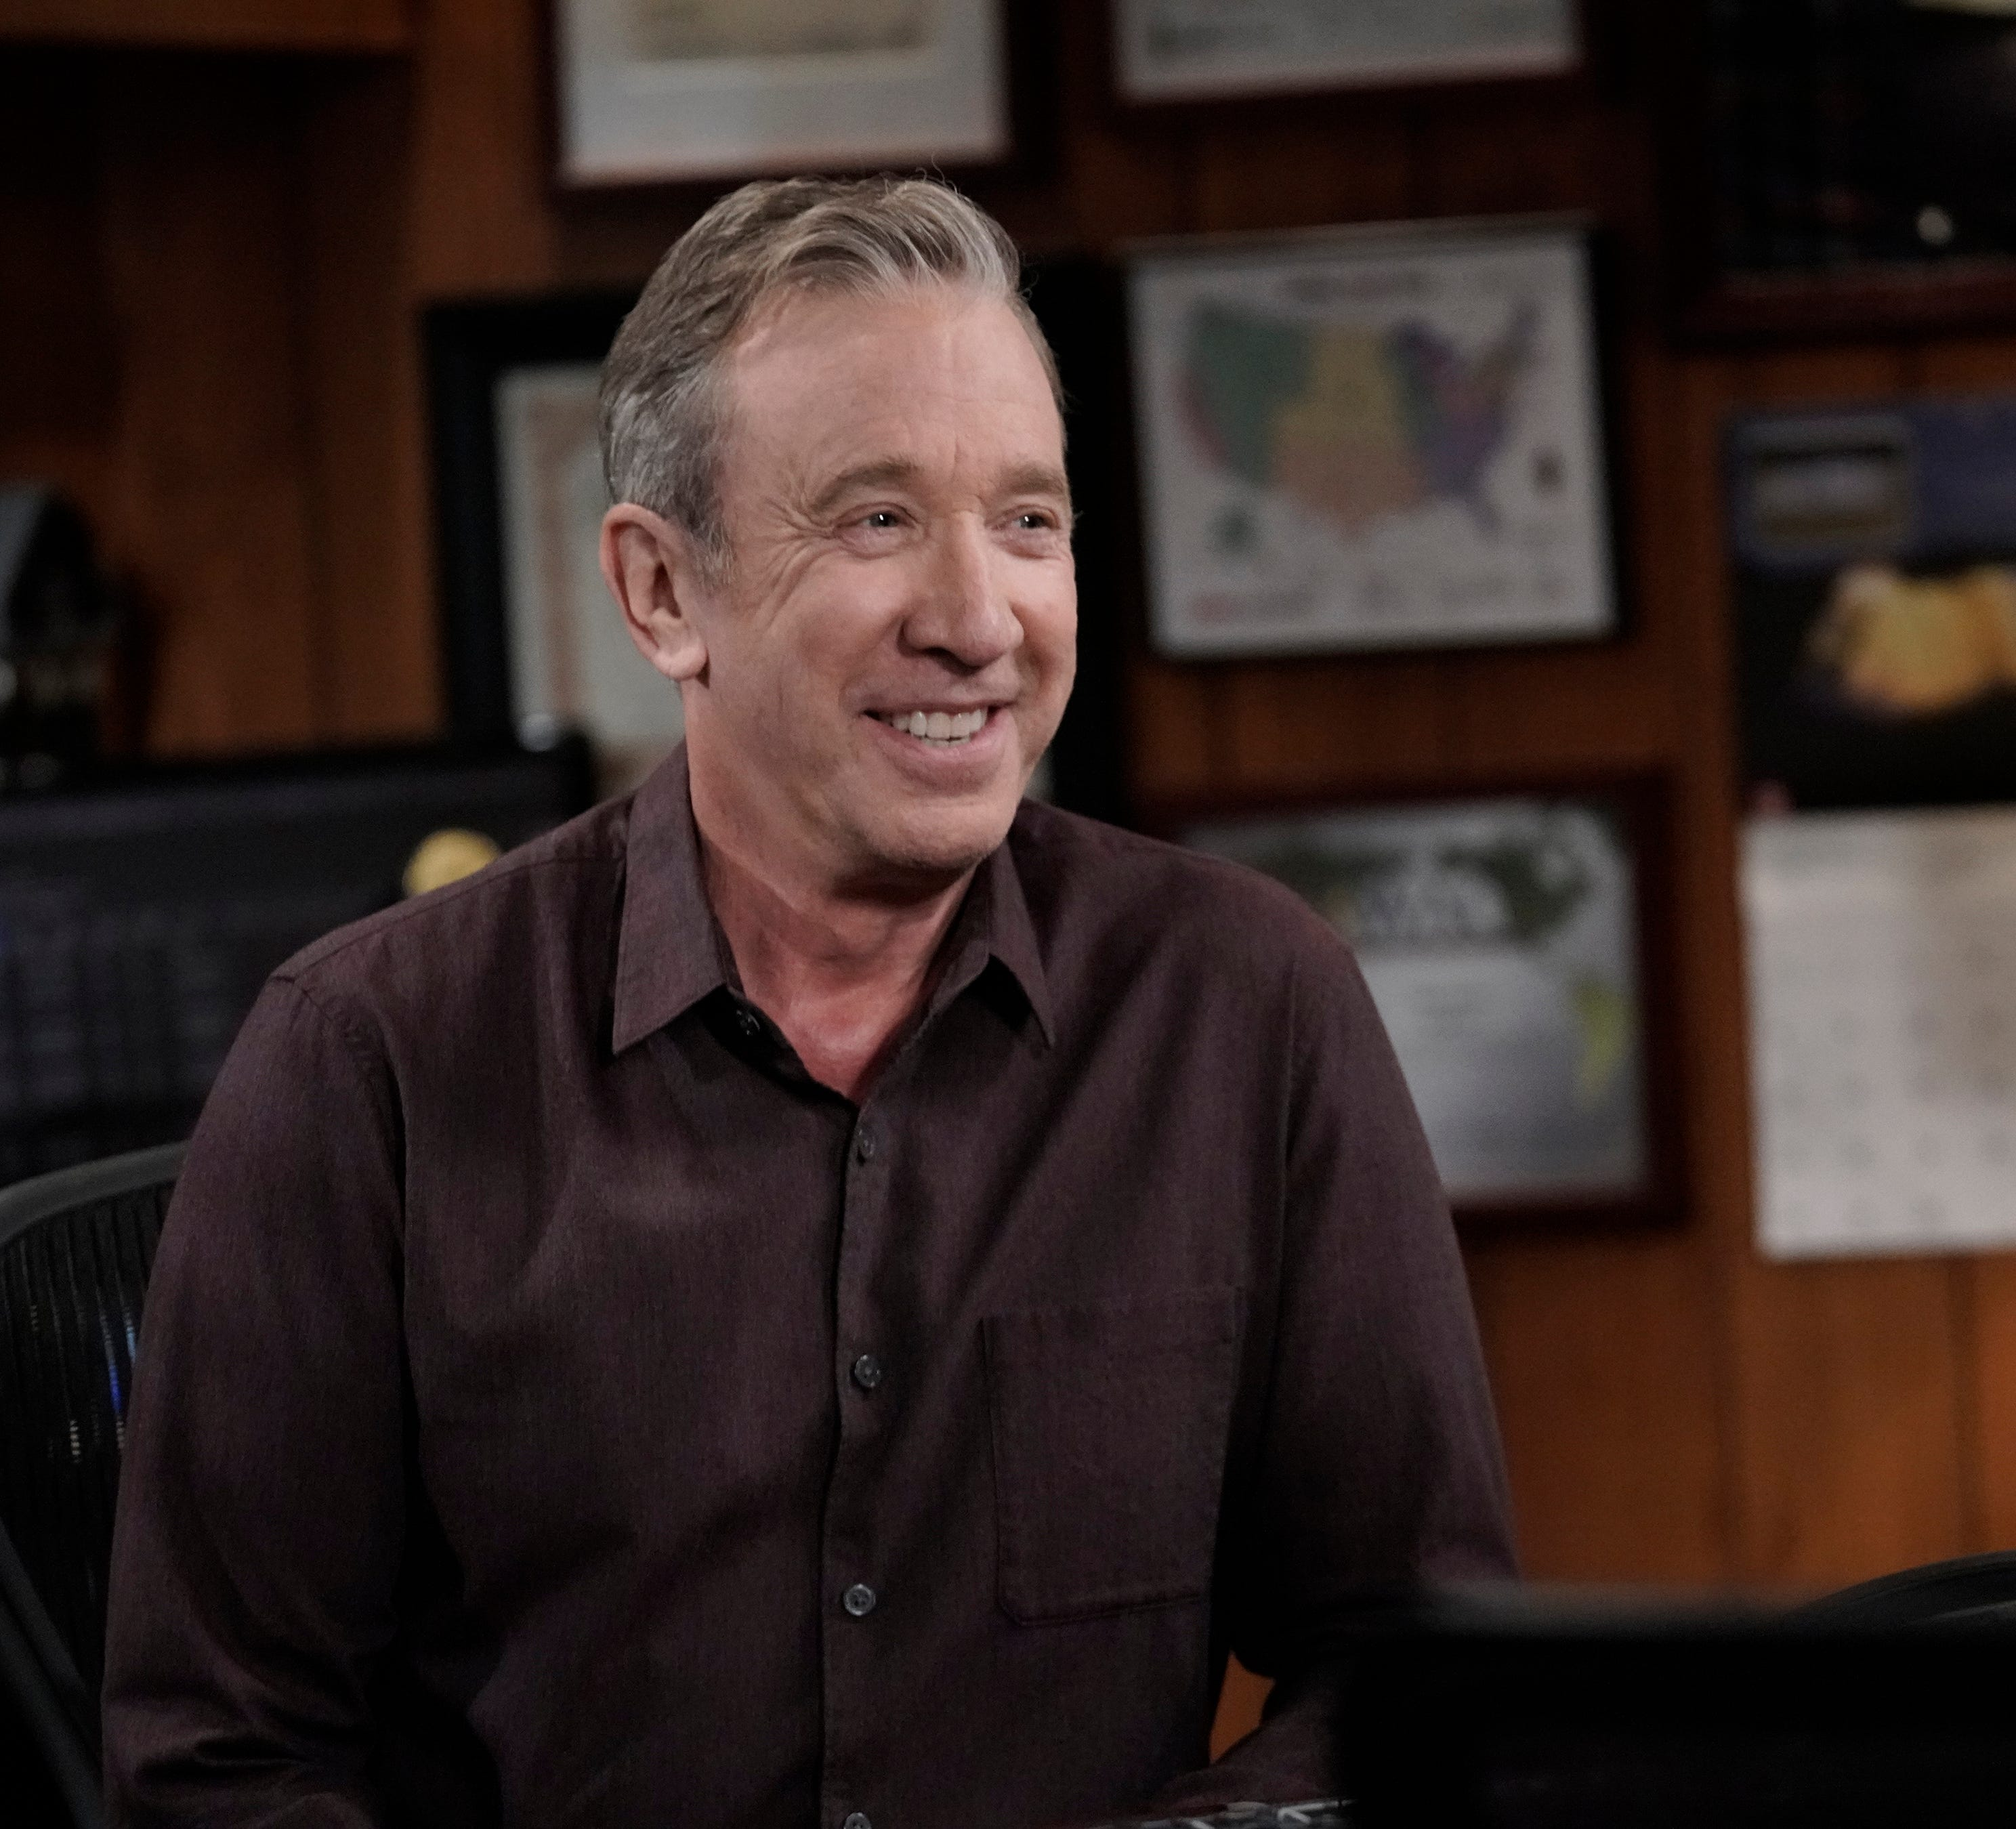 Fact check: Claim comparing cost of border wall to HealthCare.gov misattributed to actor Tim Allen